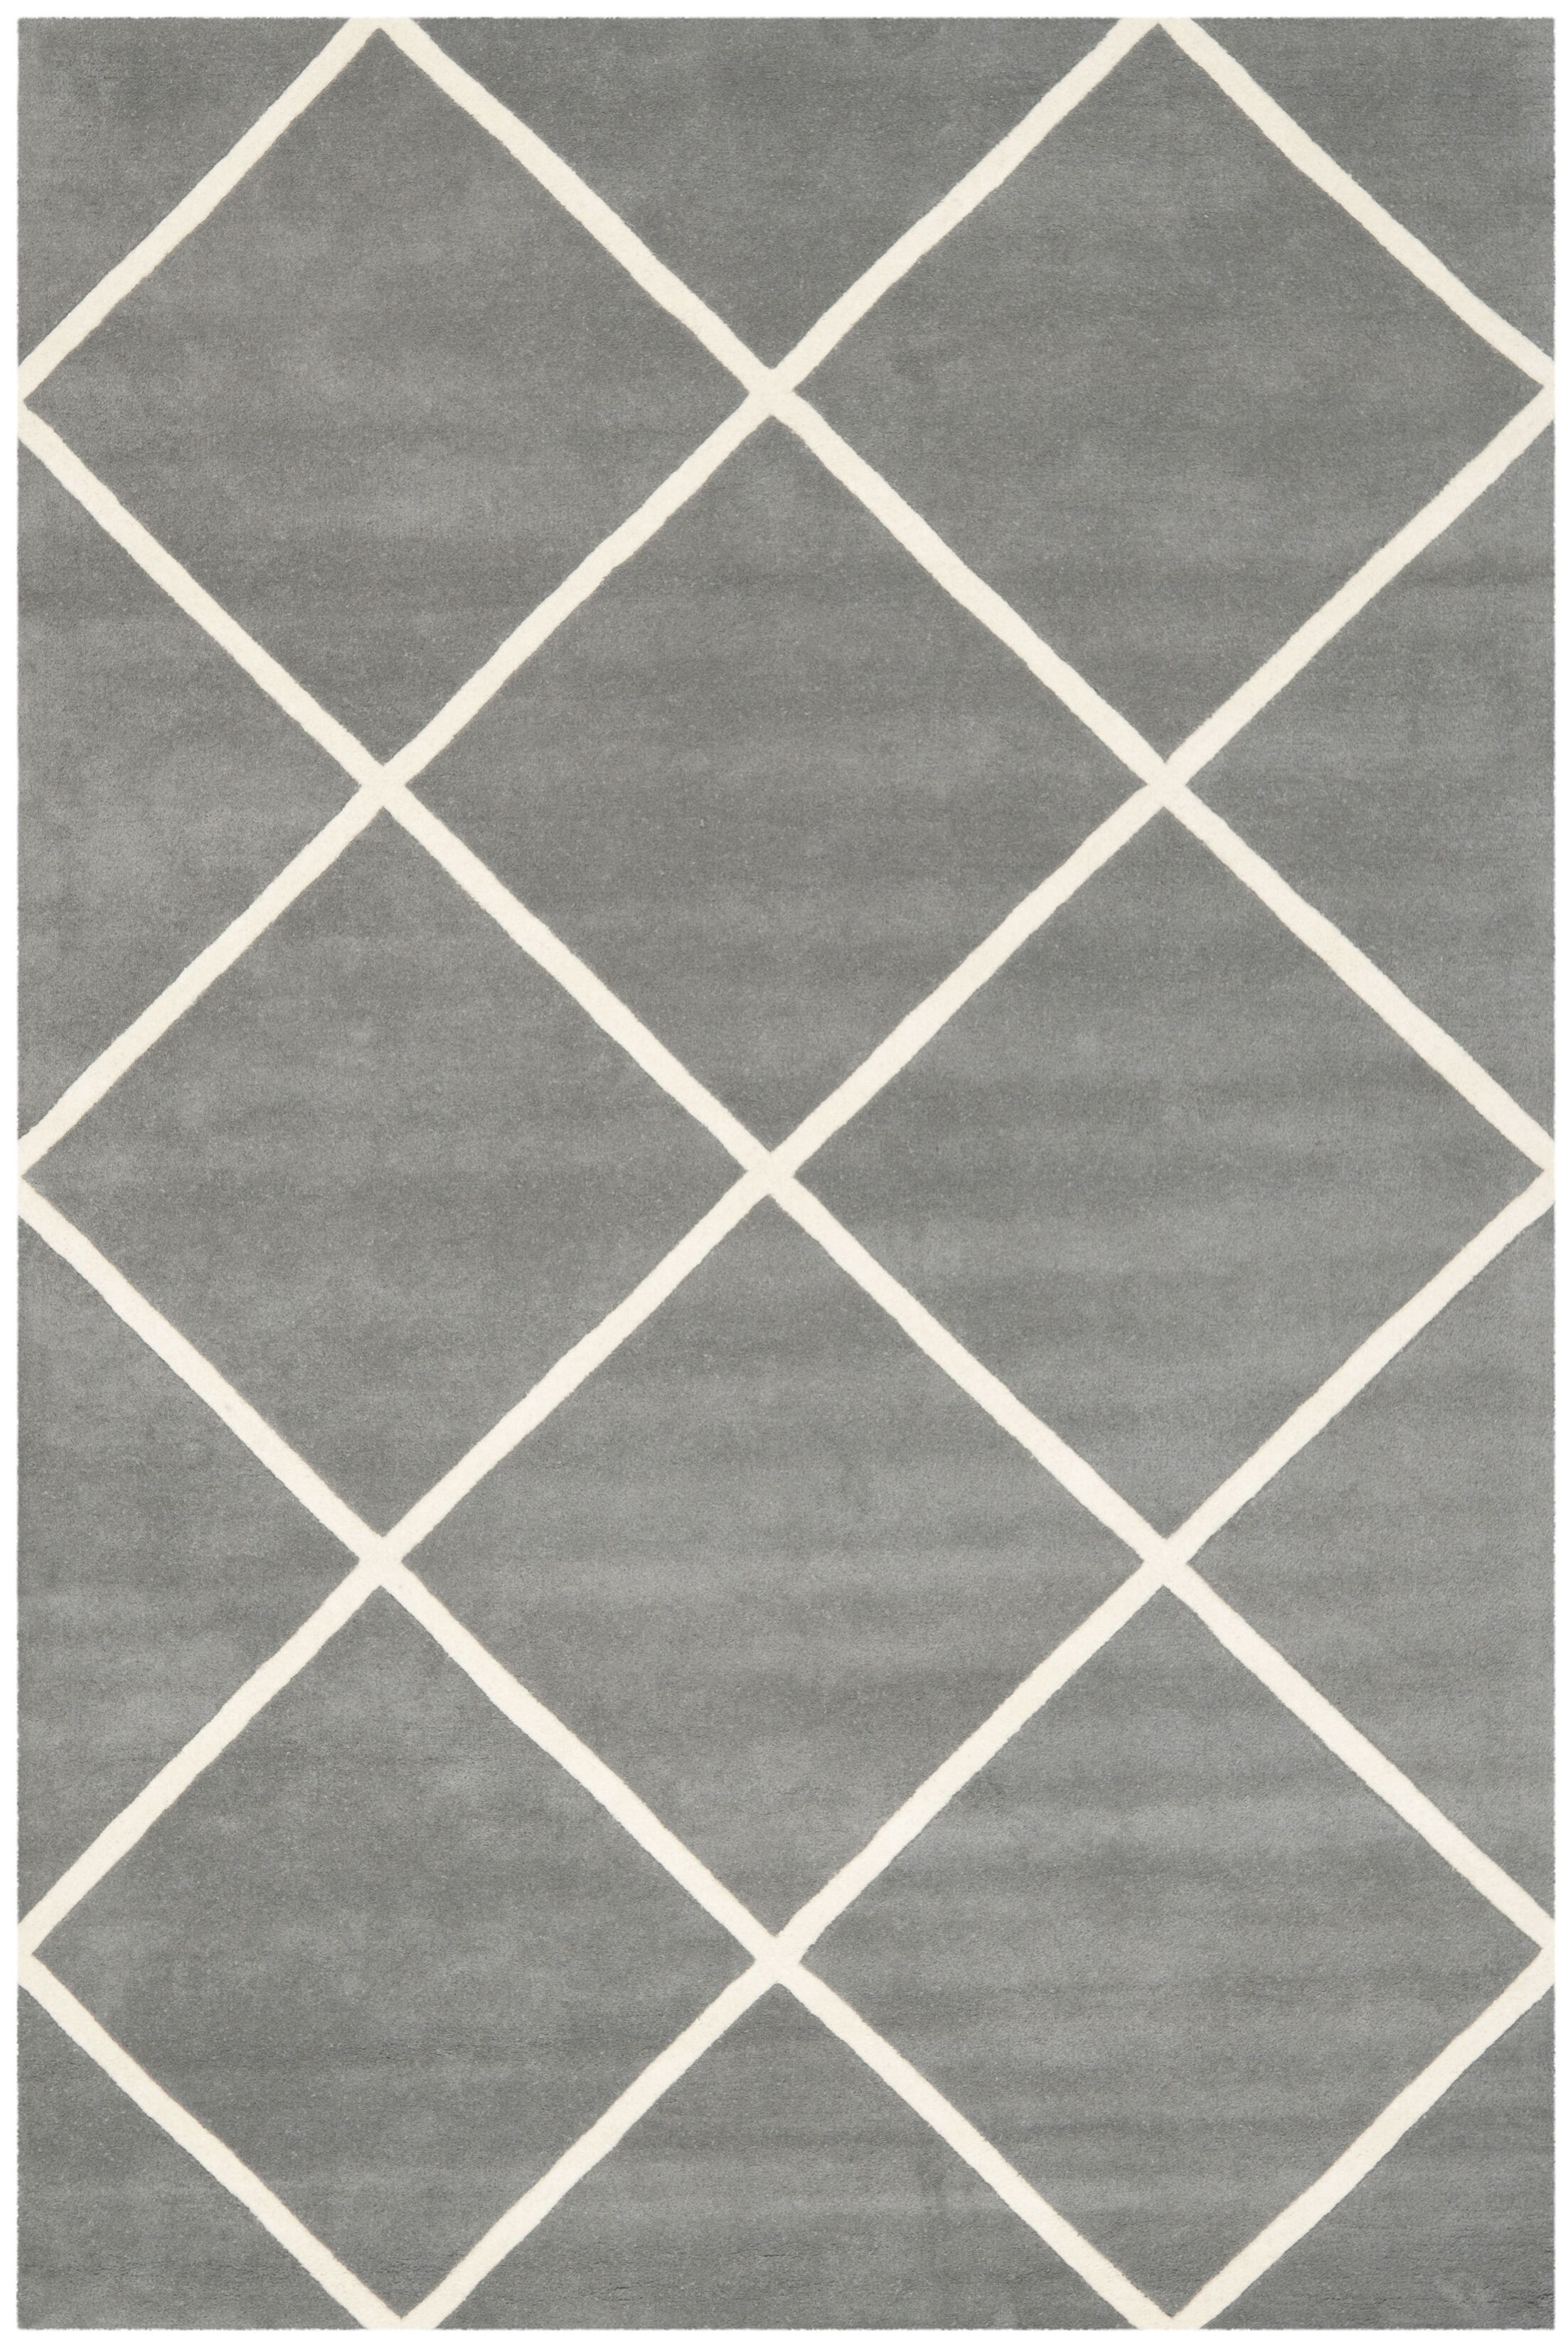 Wilkin Hand-Tufted Wool Dark Gray/Ivory Area Rug Rug Size: Rectangle 3' x 5'